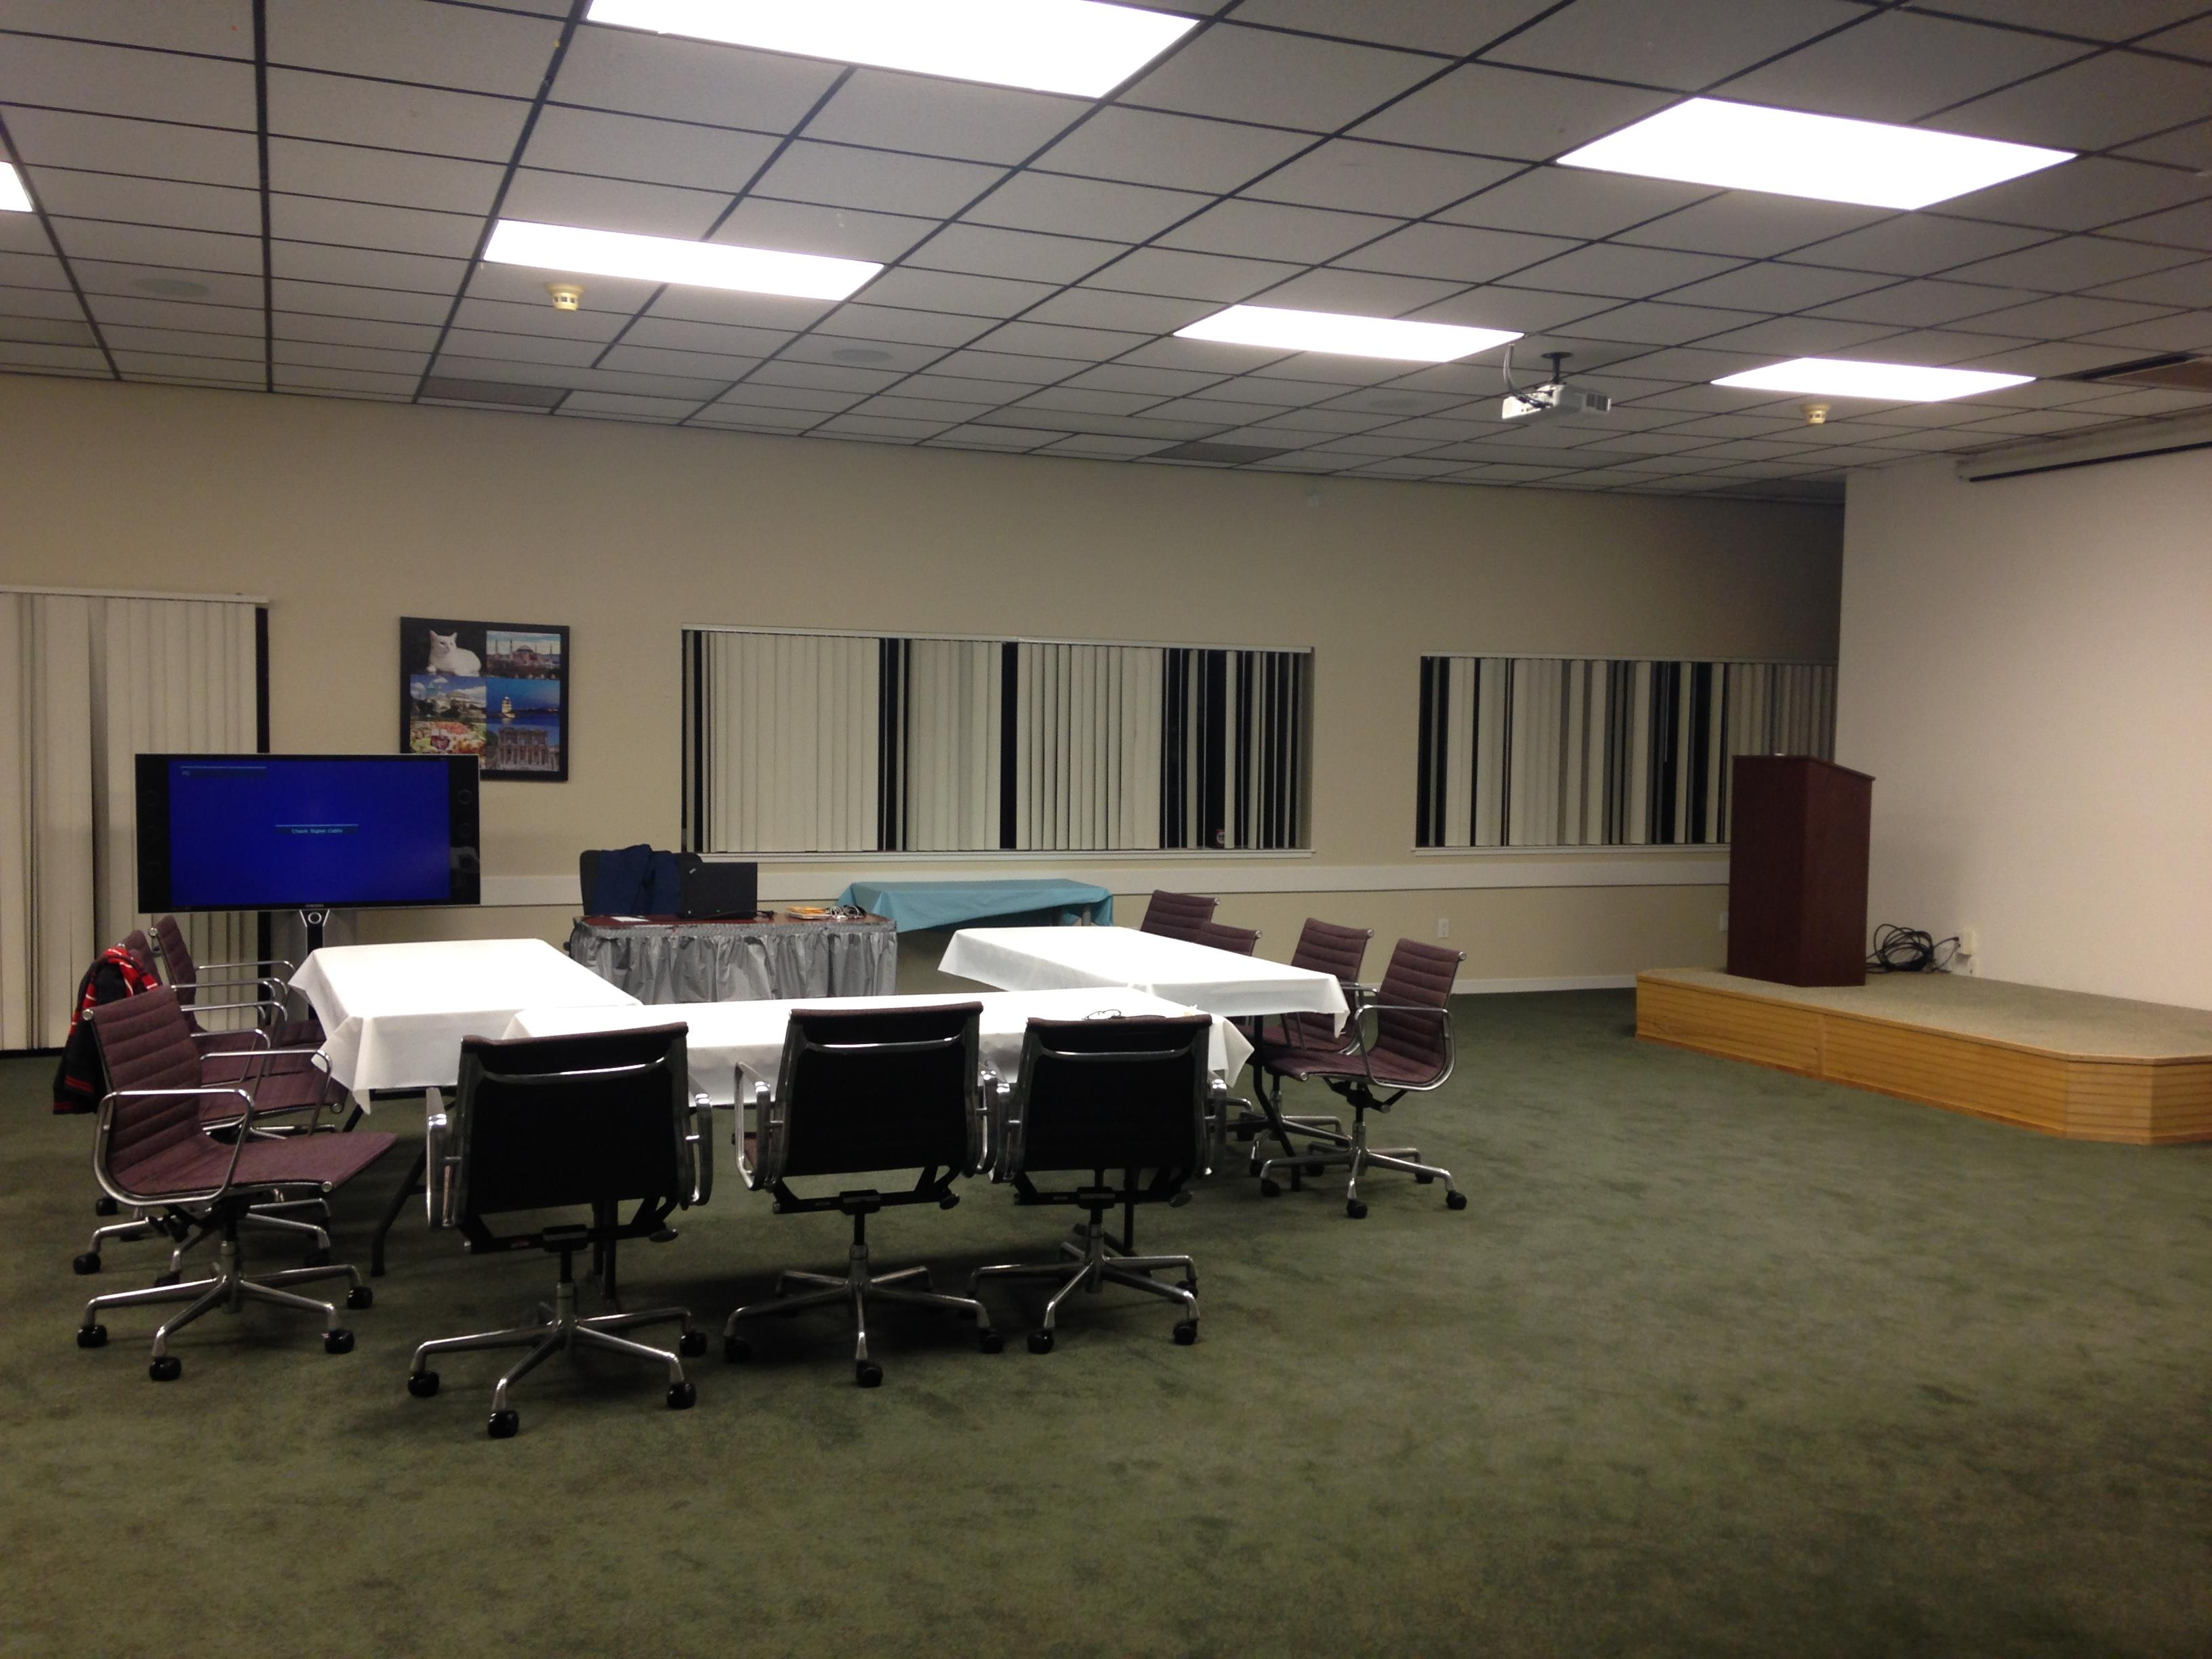 Baycc - Meeting & Conference Room